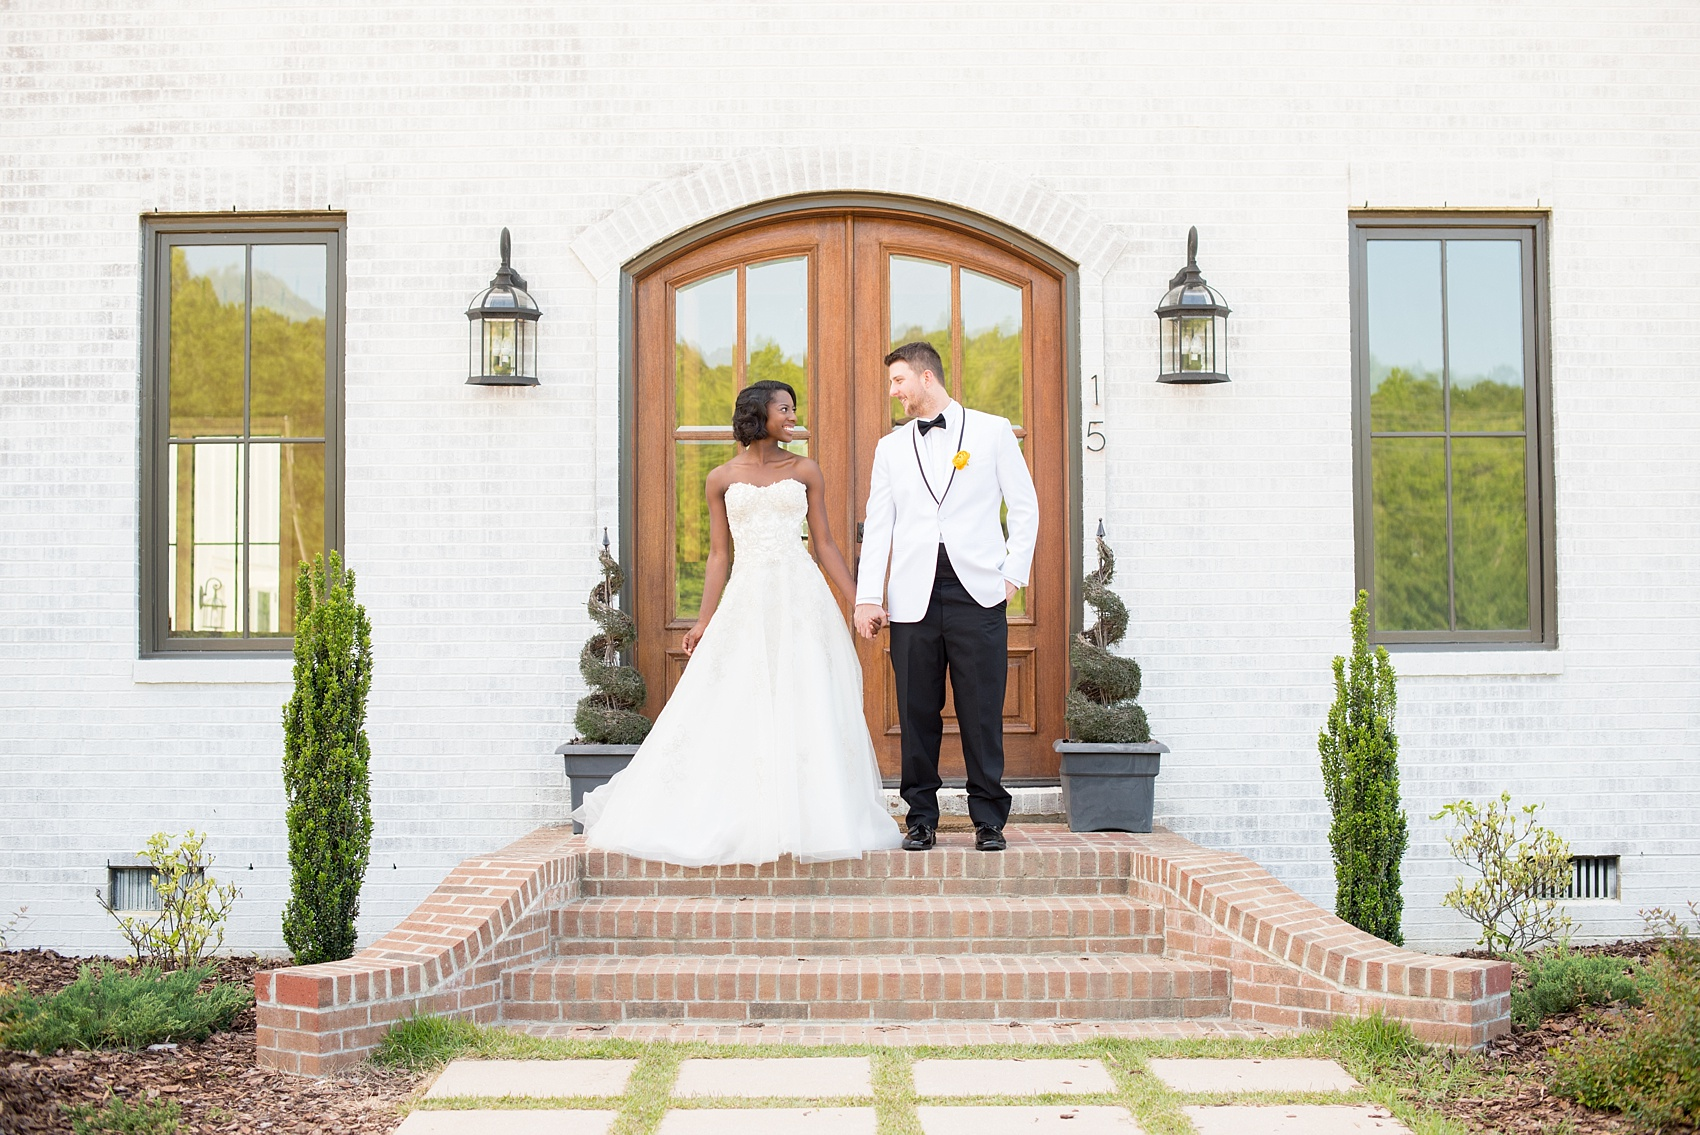 Mikkel Paige Photography photo at The Bradford, NC. Bride and groom of mixed race on the steps of the elegant NC home.